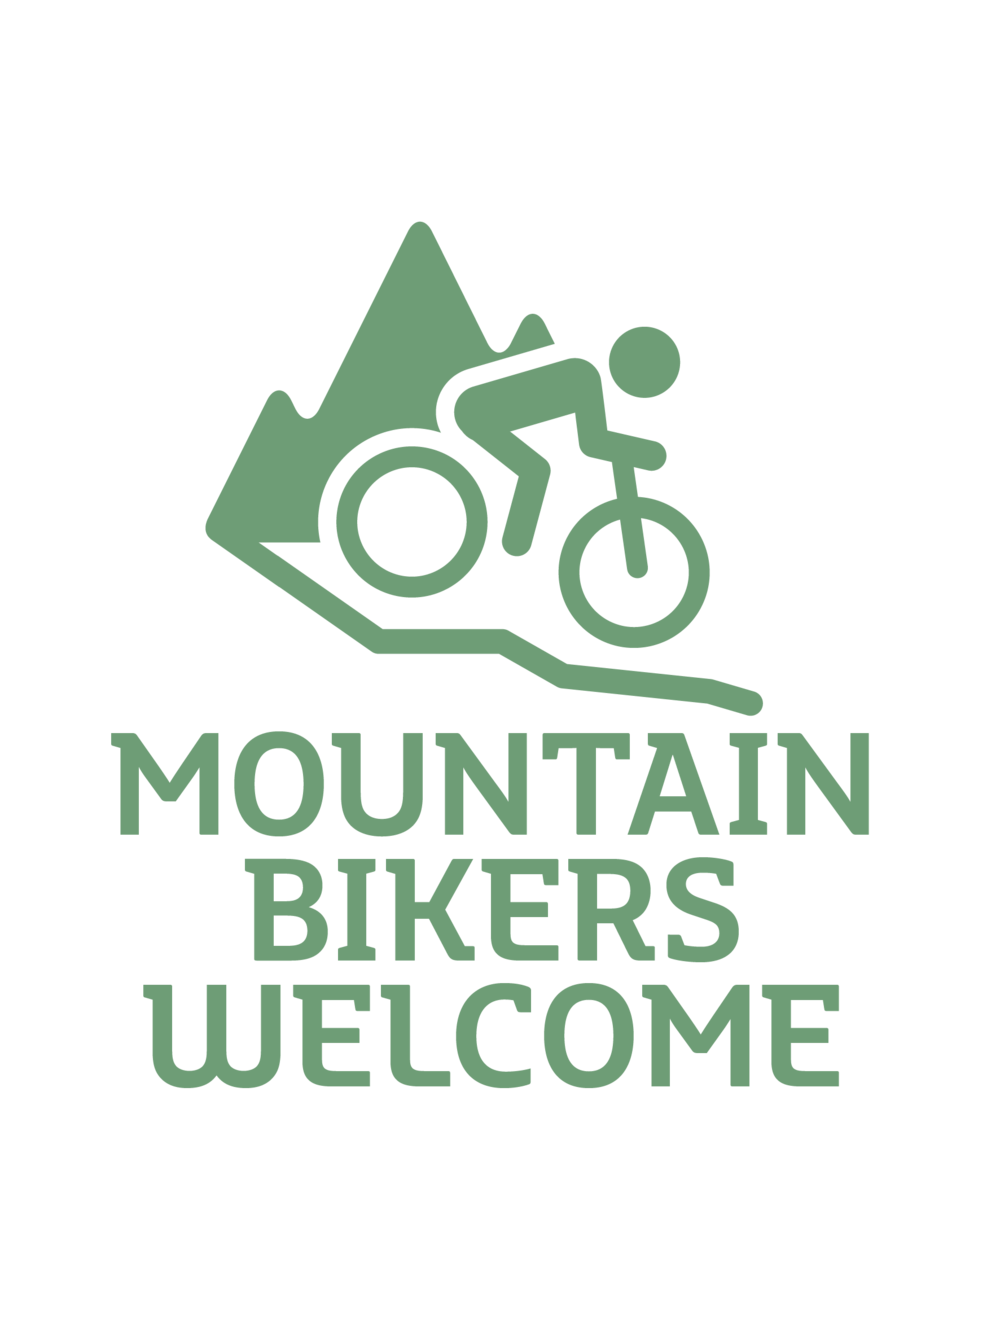 Mountain Bikers welcome.jpg